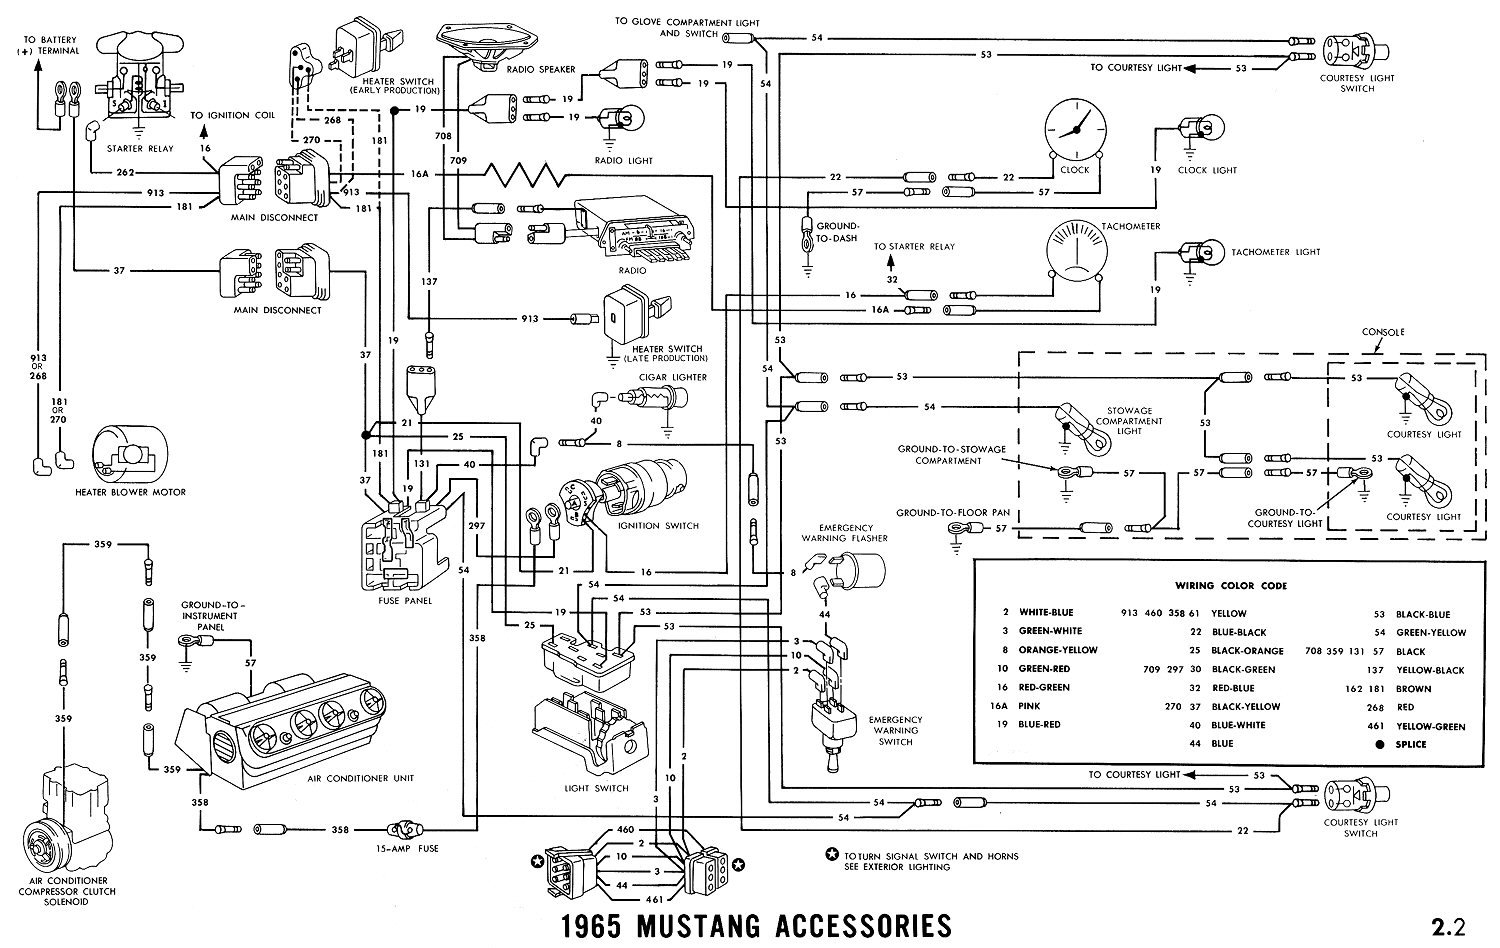 93554d1268999911 1965 mustang radio wiring connections 1965i wires behind instrument cluster cigarette lighter connector 1969 mustang dash wiring diagram at fashall.co